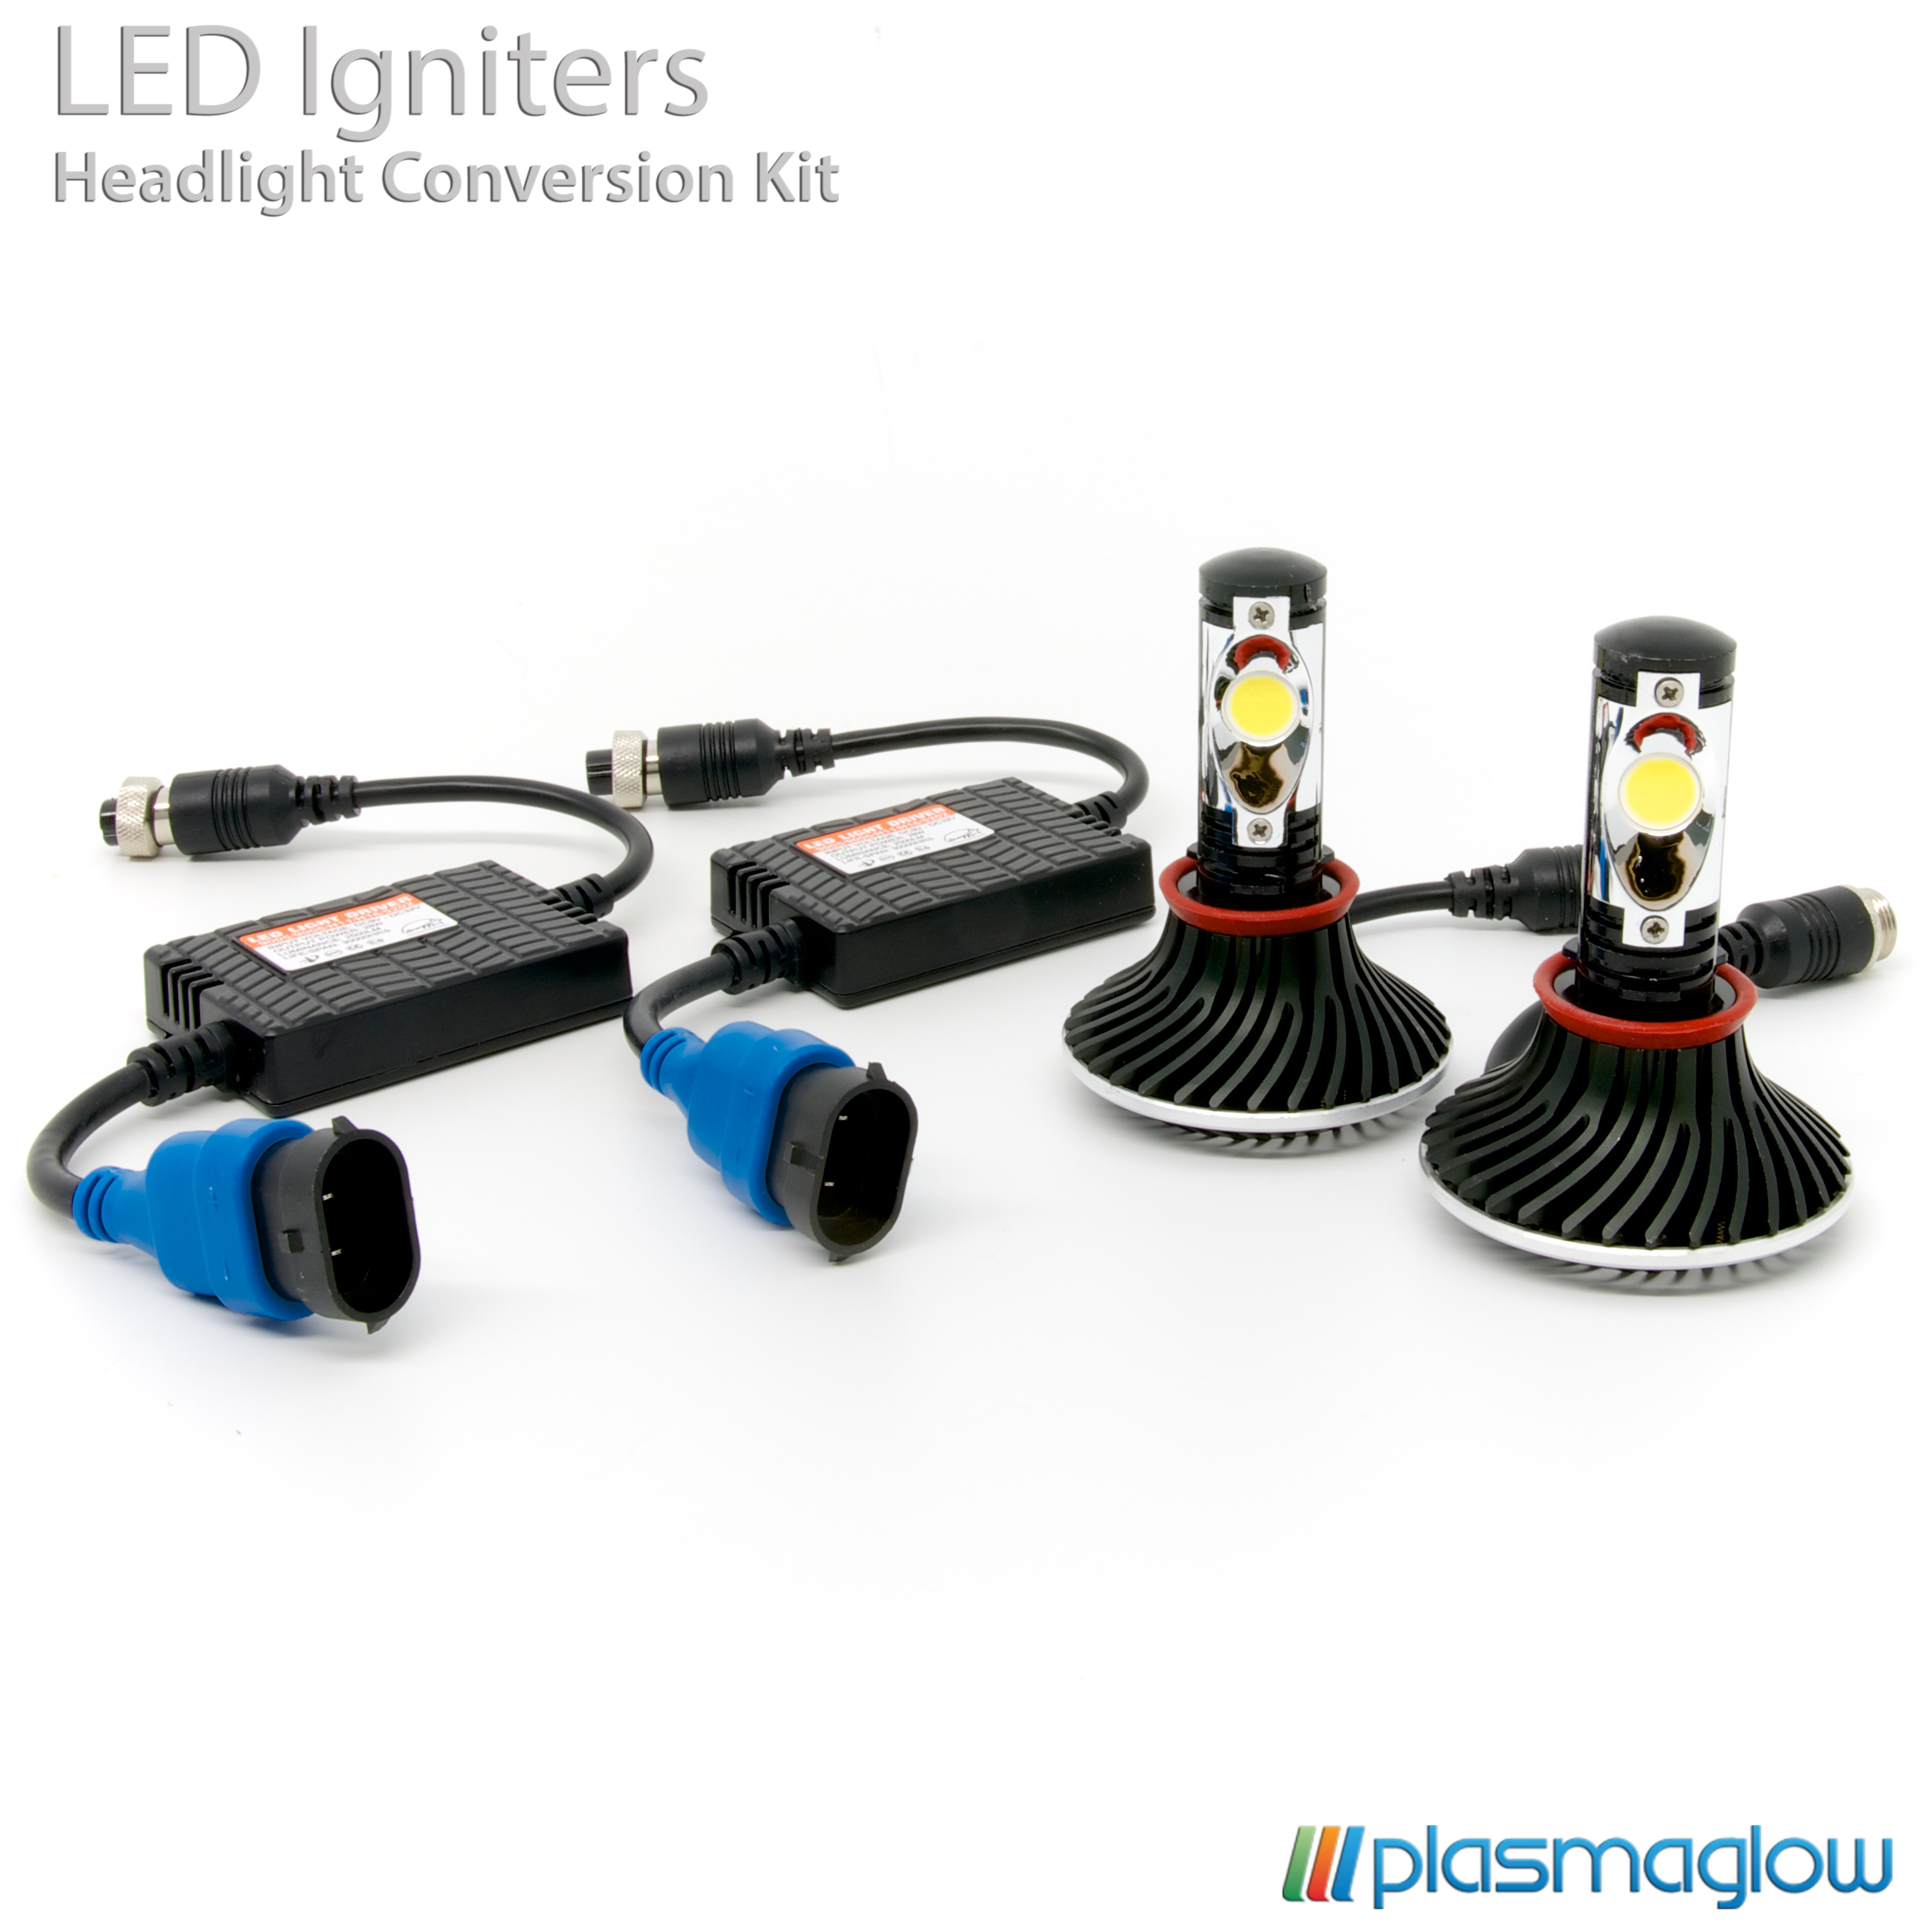 Plasmaglow 9006 Igniters LED Headlight Conversion Kit